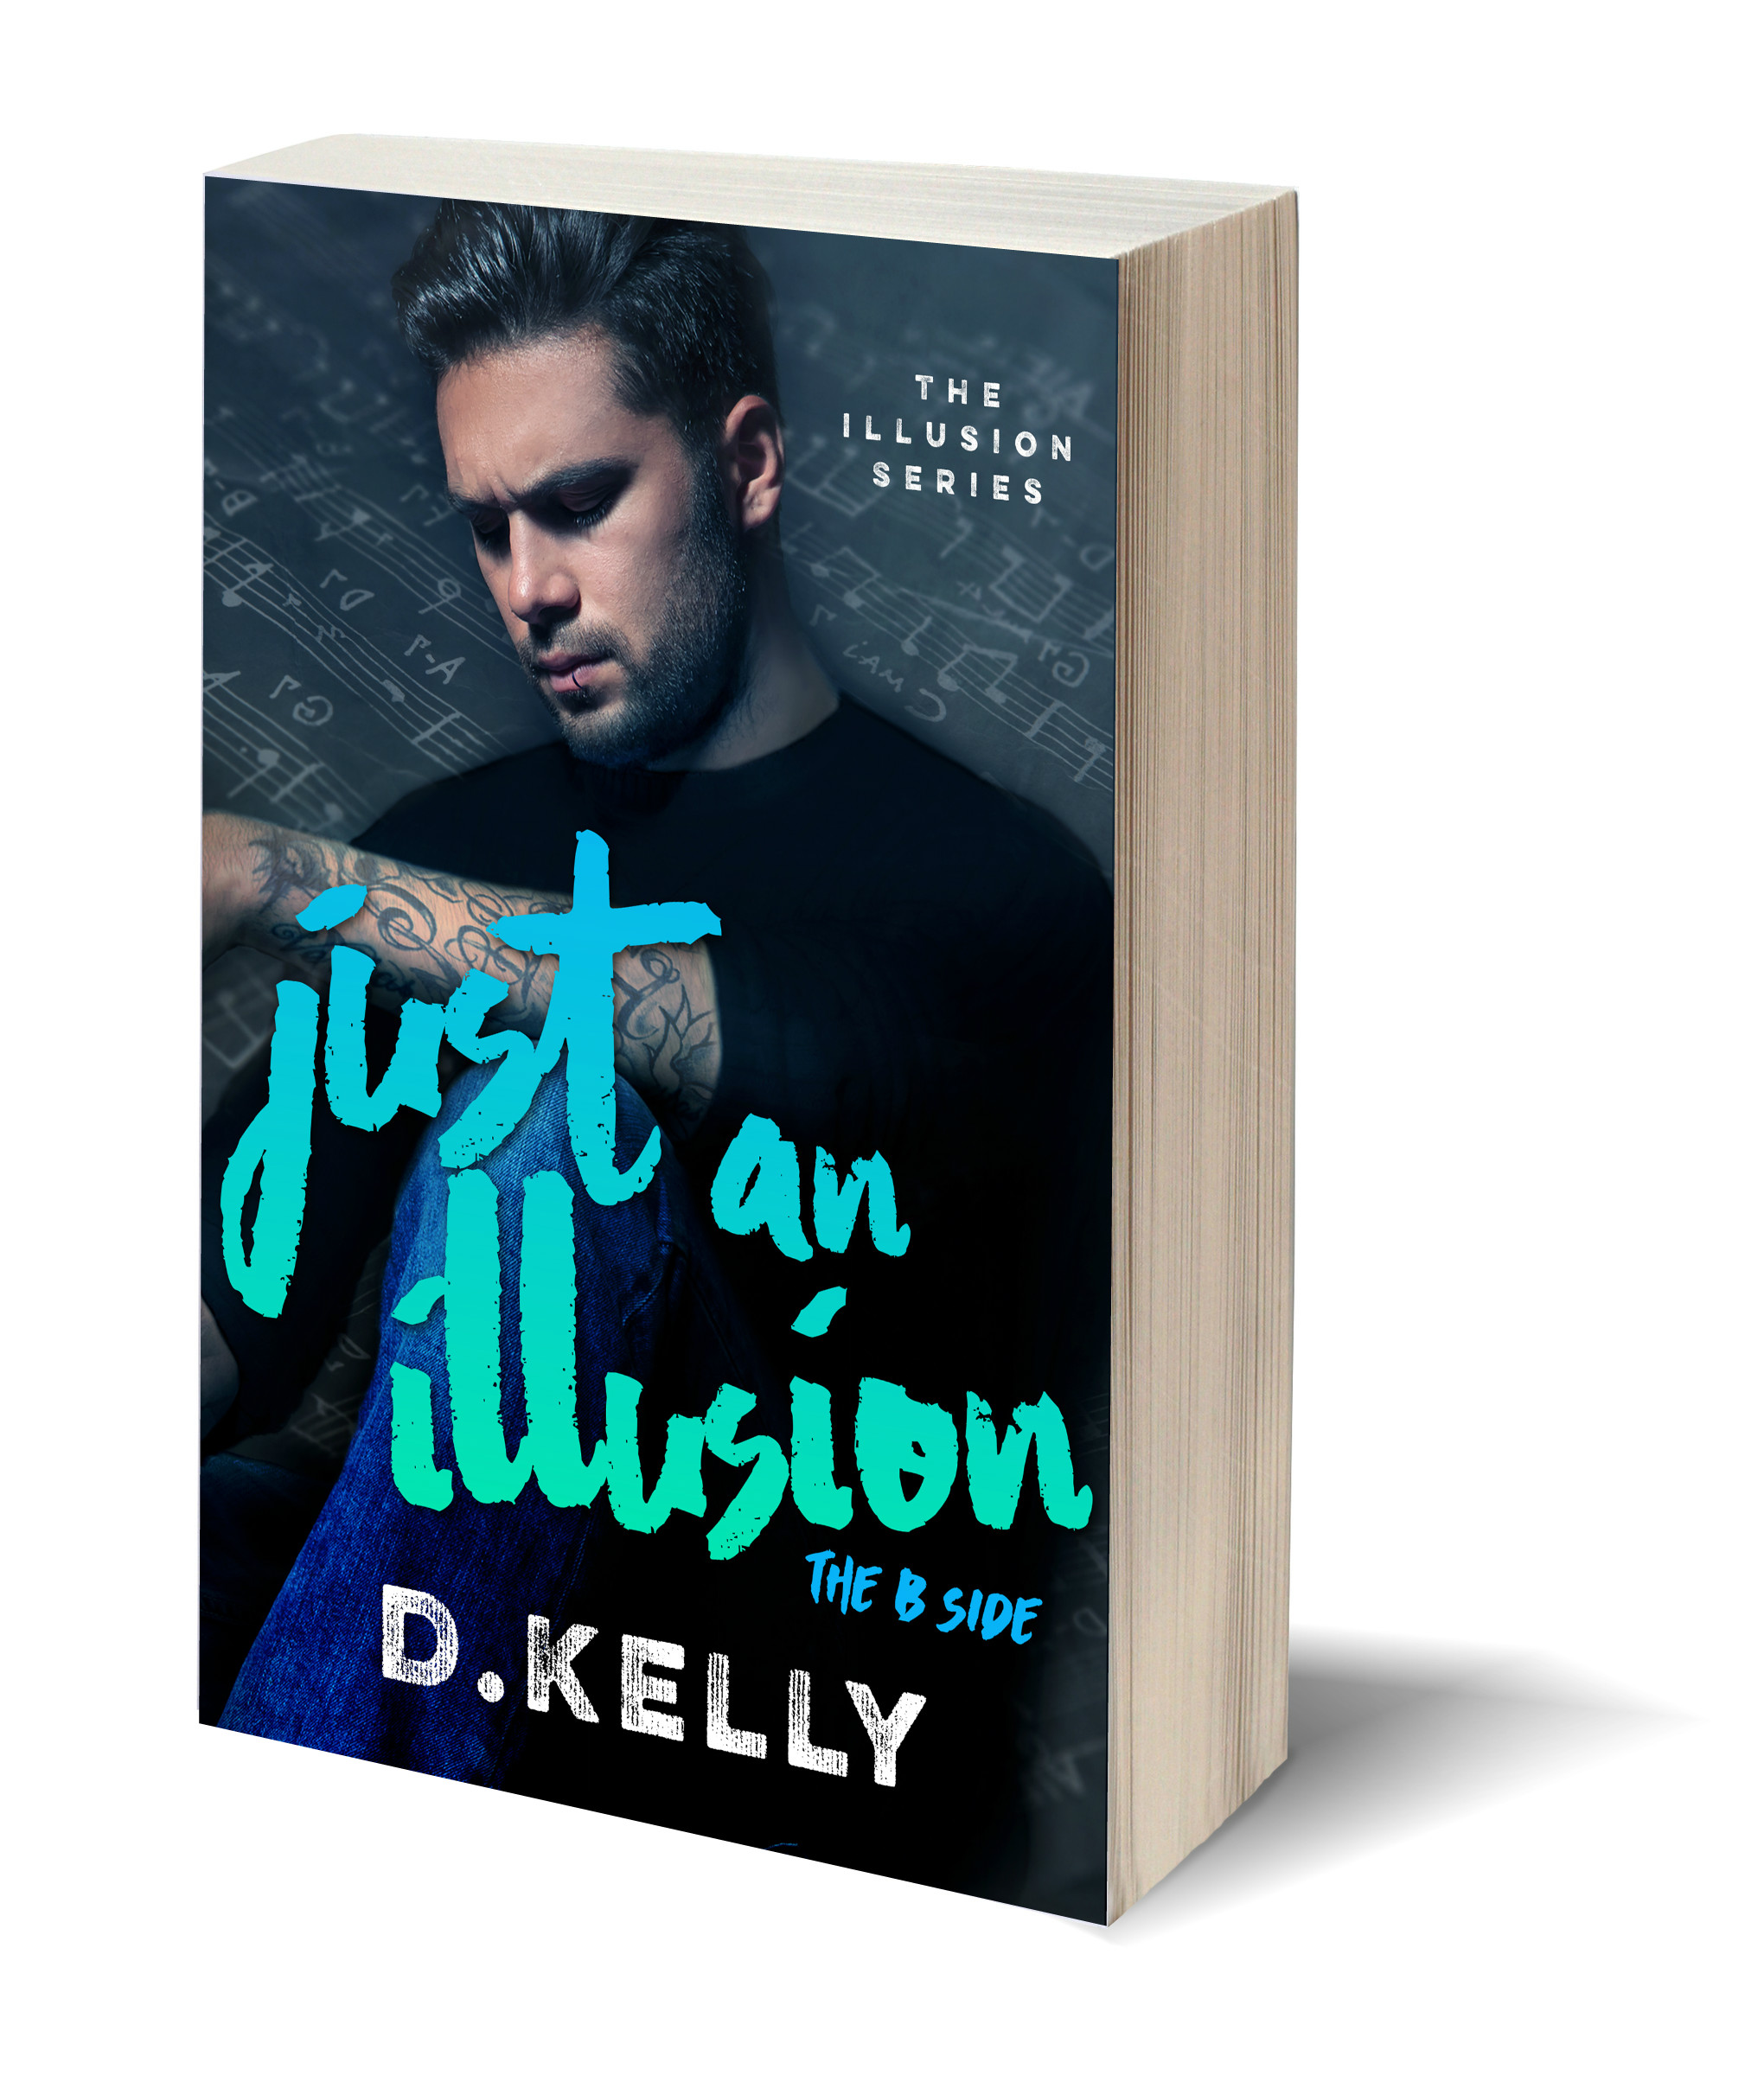 Just An Illusion The B Side 3D book image.jpg